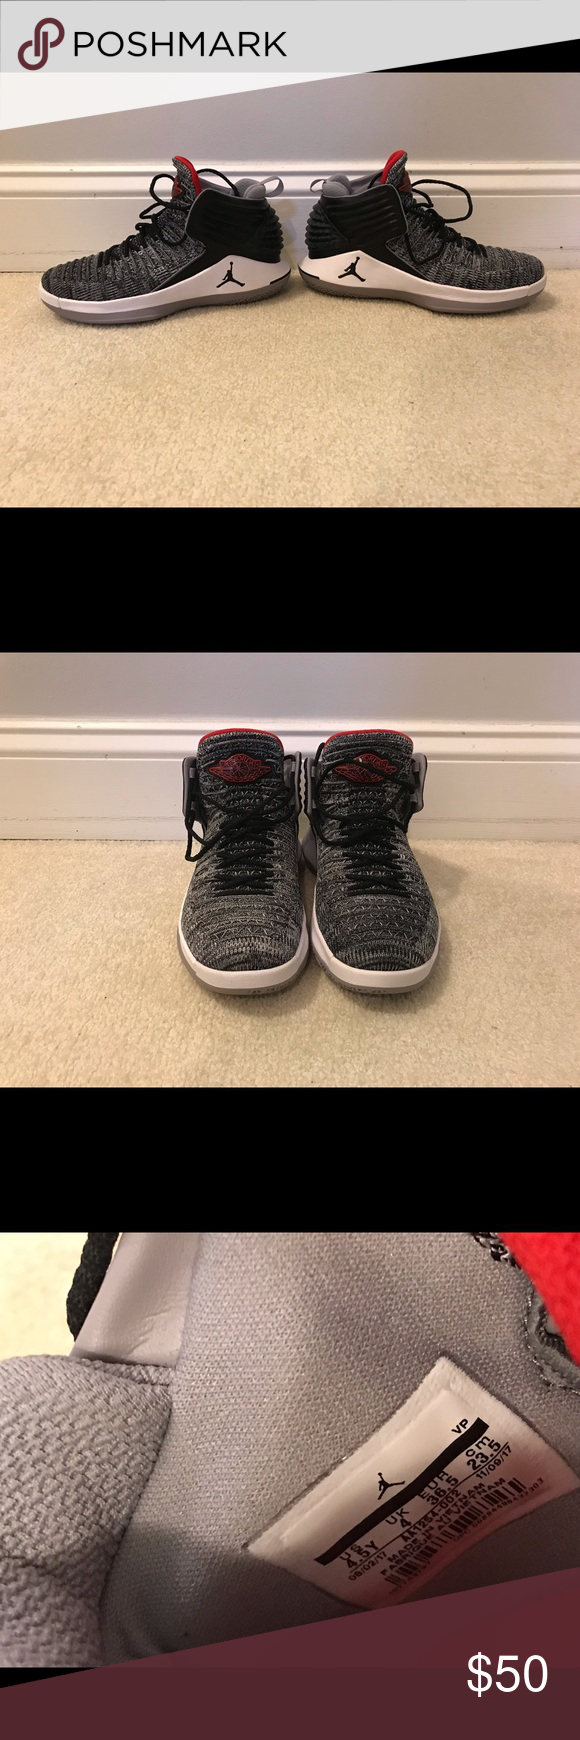 on sale e642c 687c5 Jordan AJ XXXII Mid Lightly used Jordan AJ XXXII Mid. Very ...